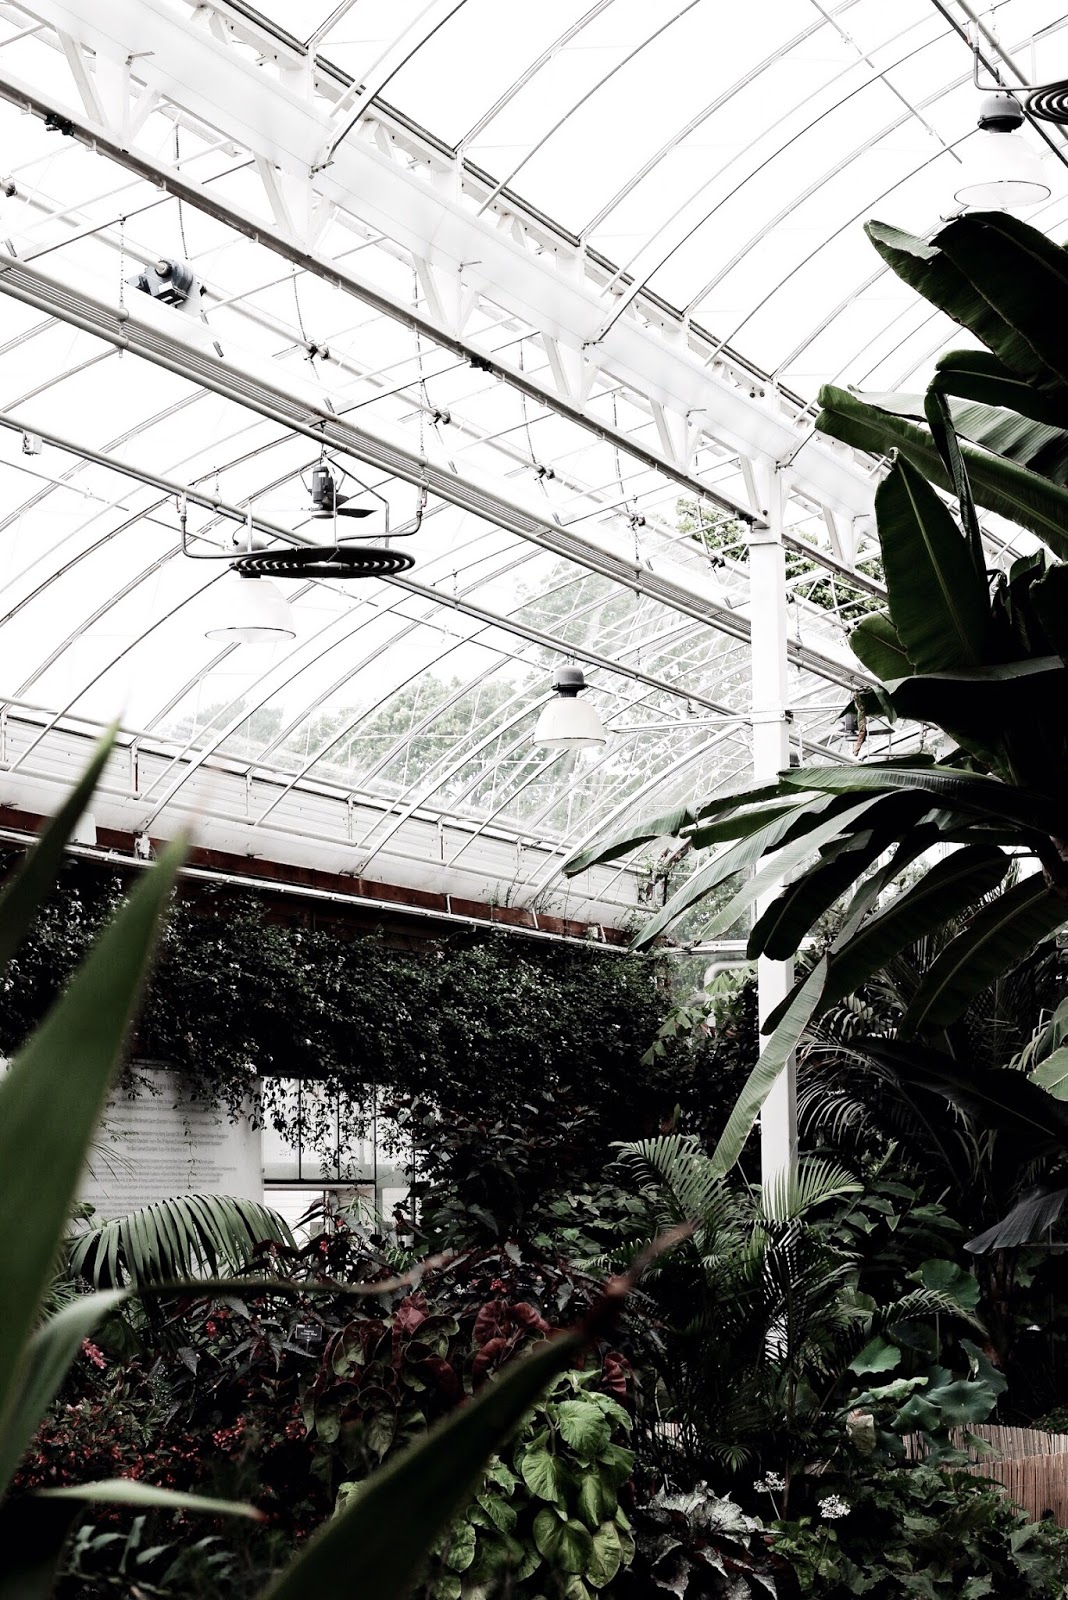 Glasshouse in the South East of England UK